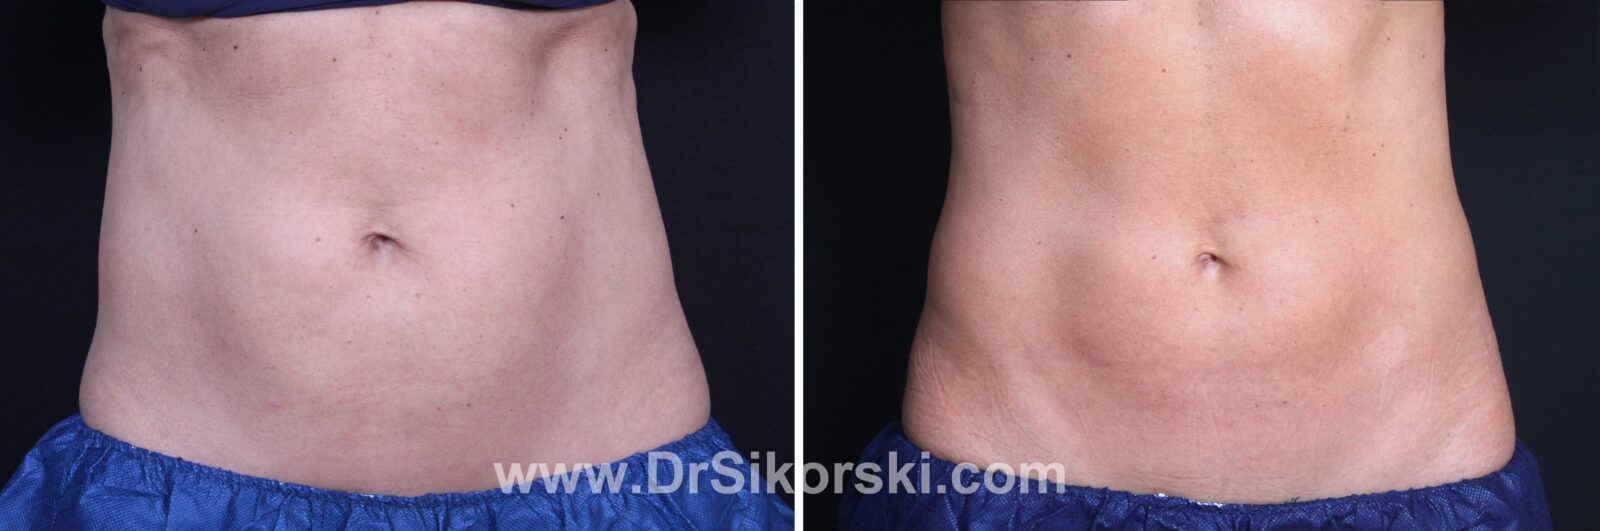 CoolSculpting Before and After Patient E 1